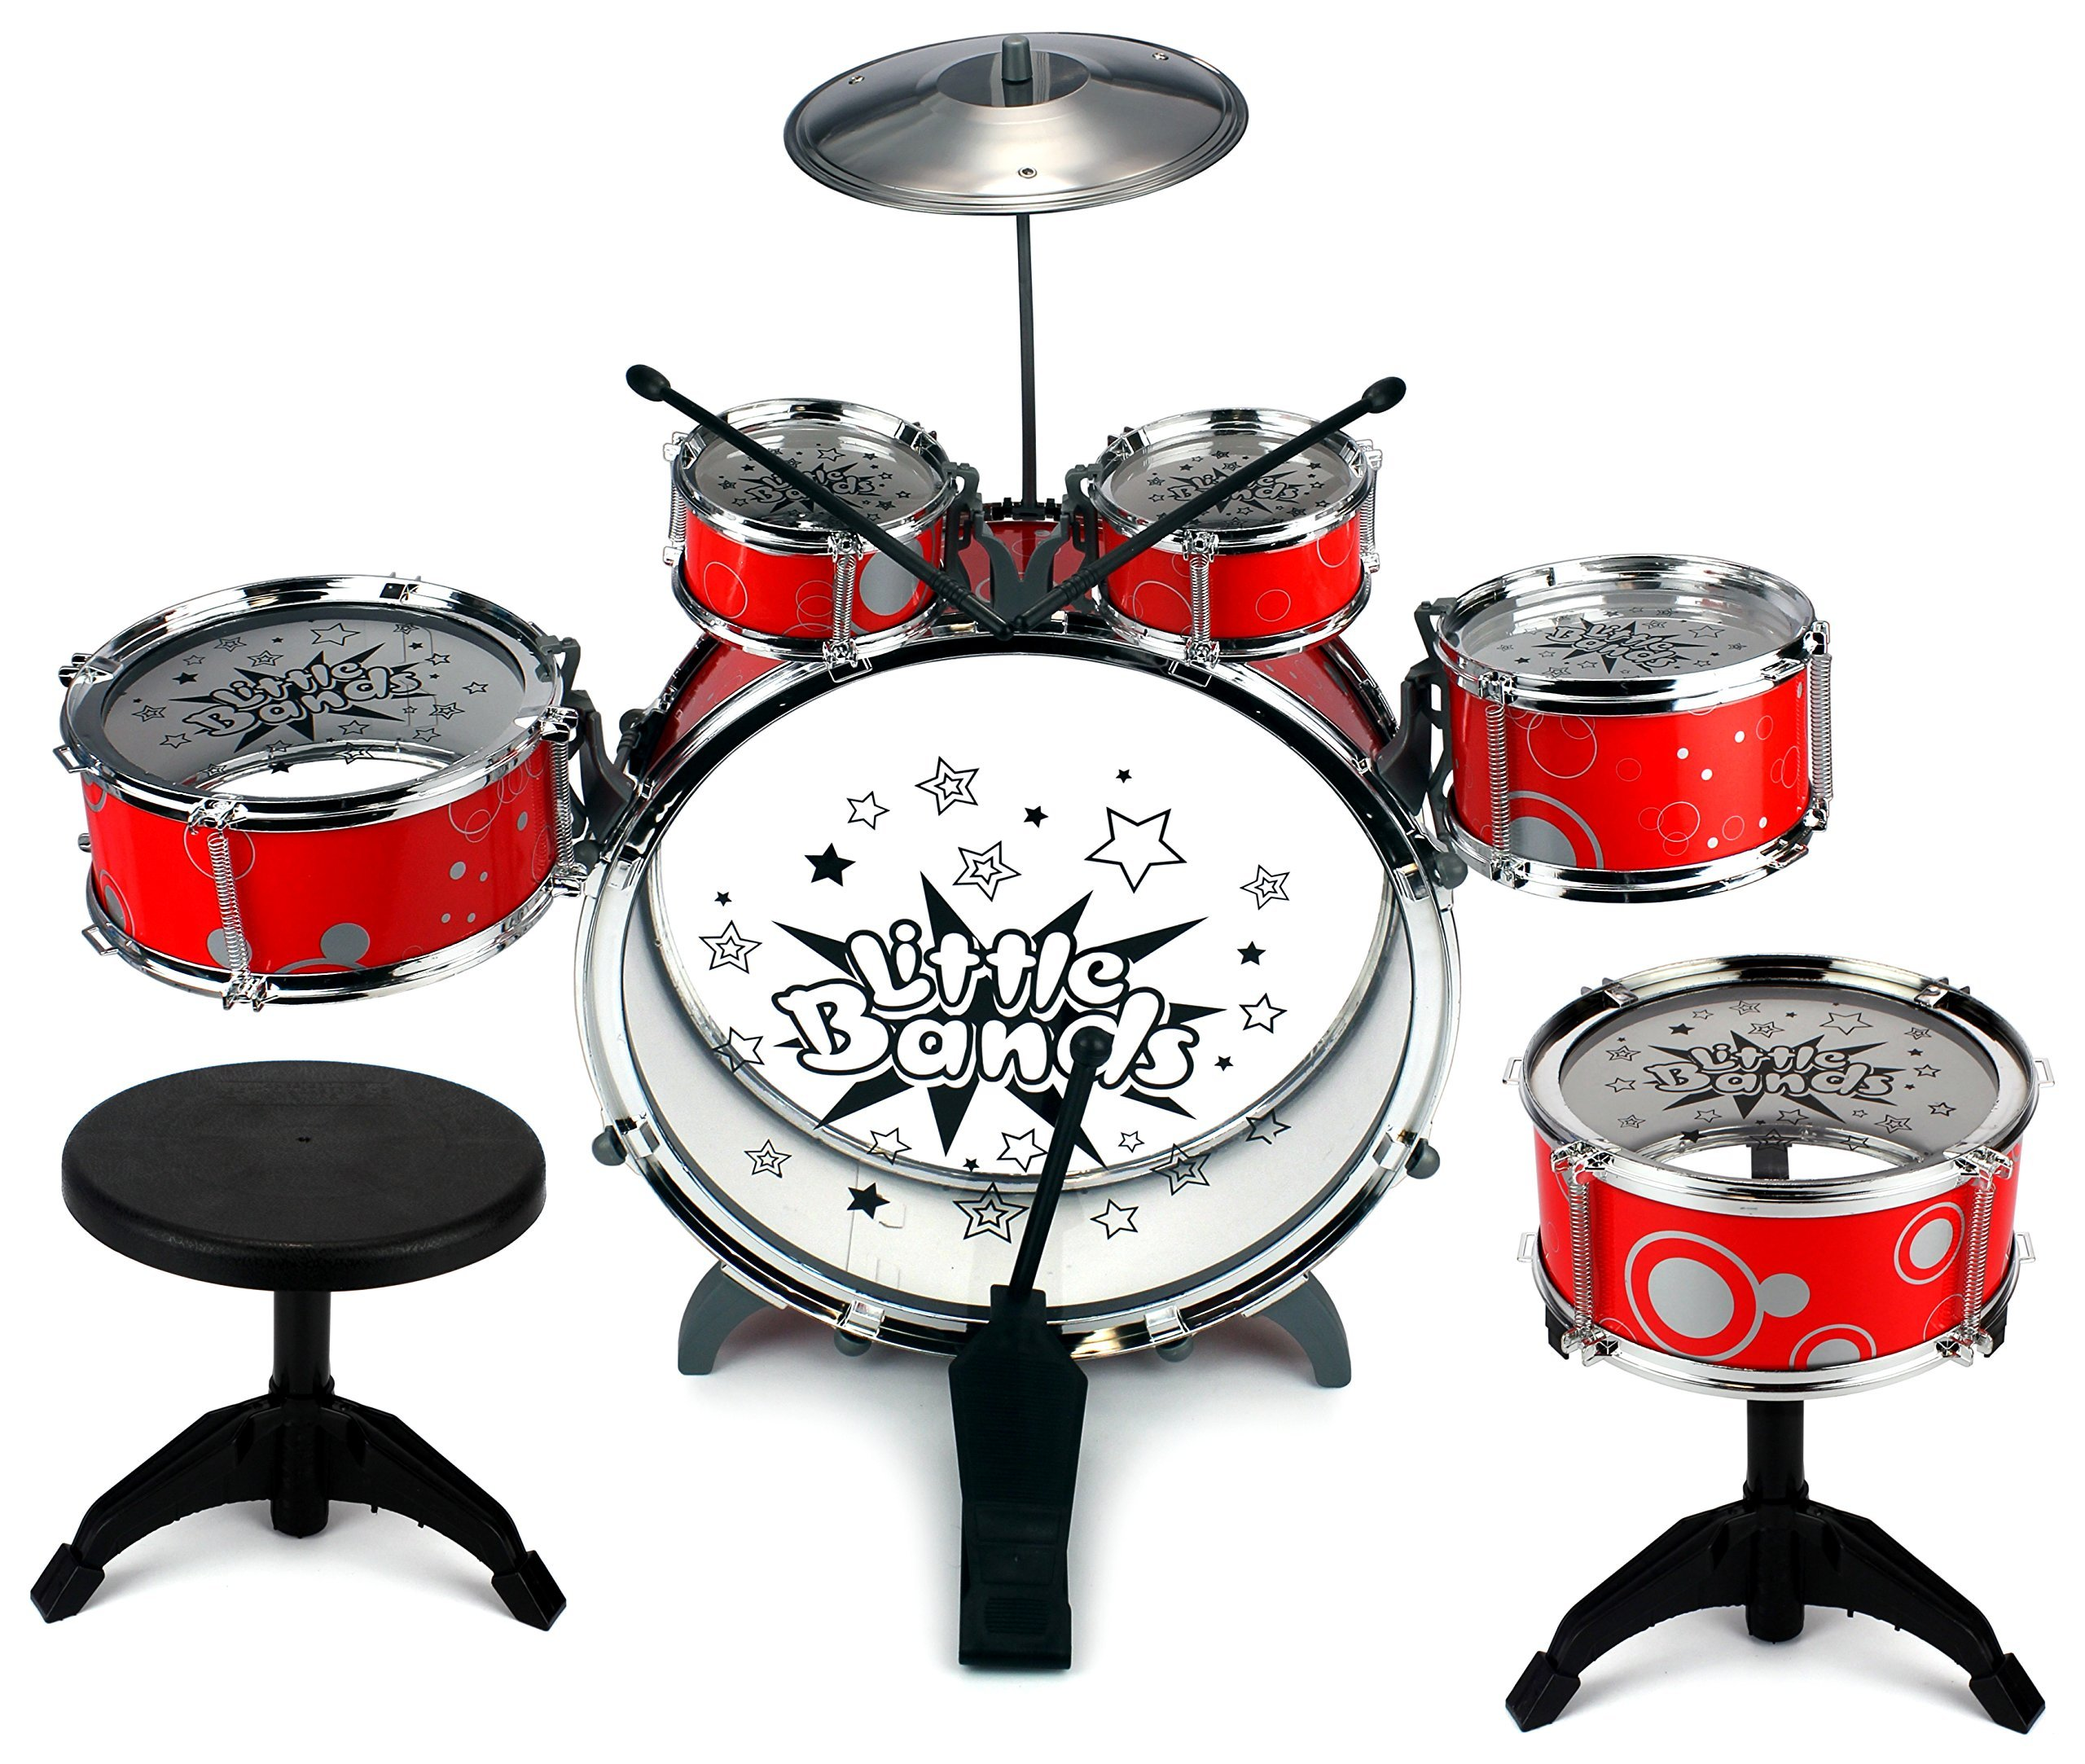 Velocity Toys Little Bands Jazz Rock Star Children's Kid's Toy Drum Musical Instrument Playset with 6 Drums, Cymbal, Chair, Kick Pedal, Drumsticks by Velocity Toys